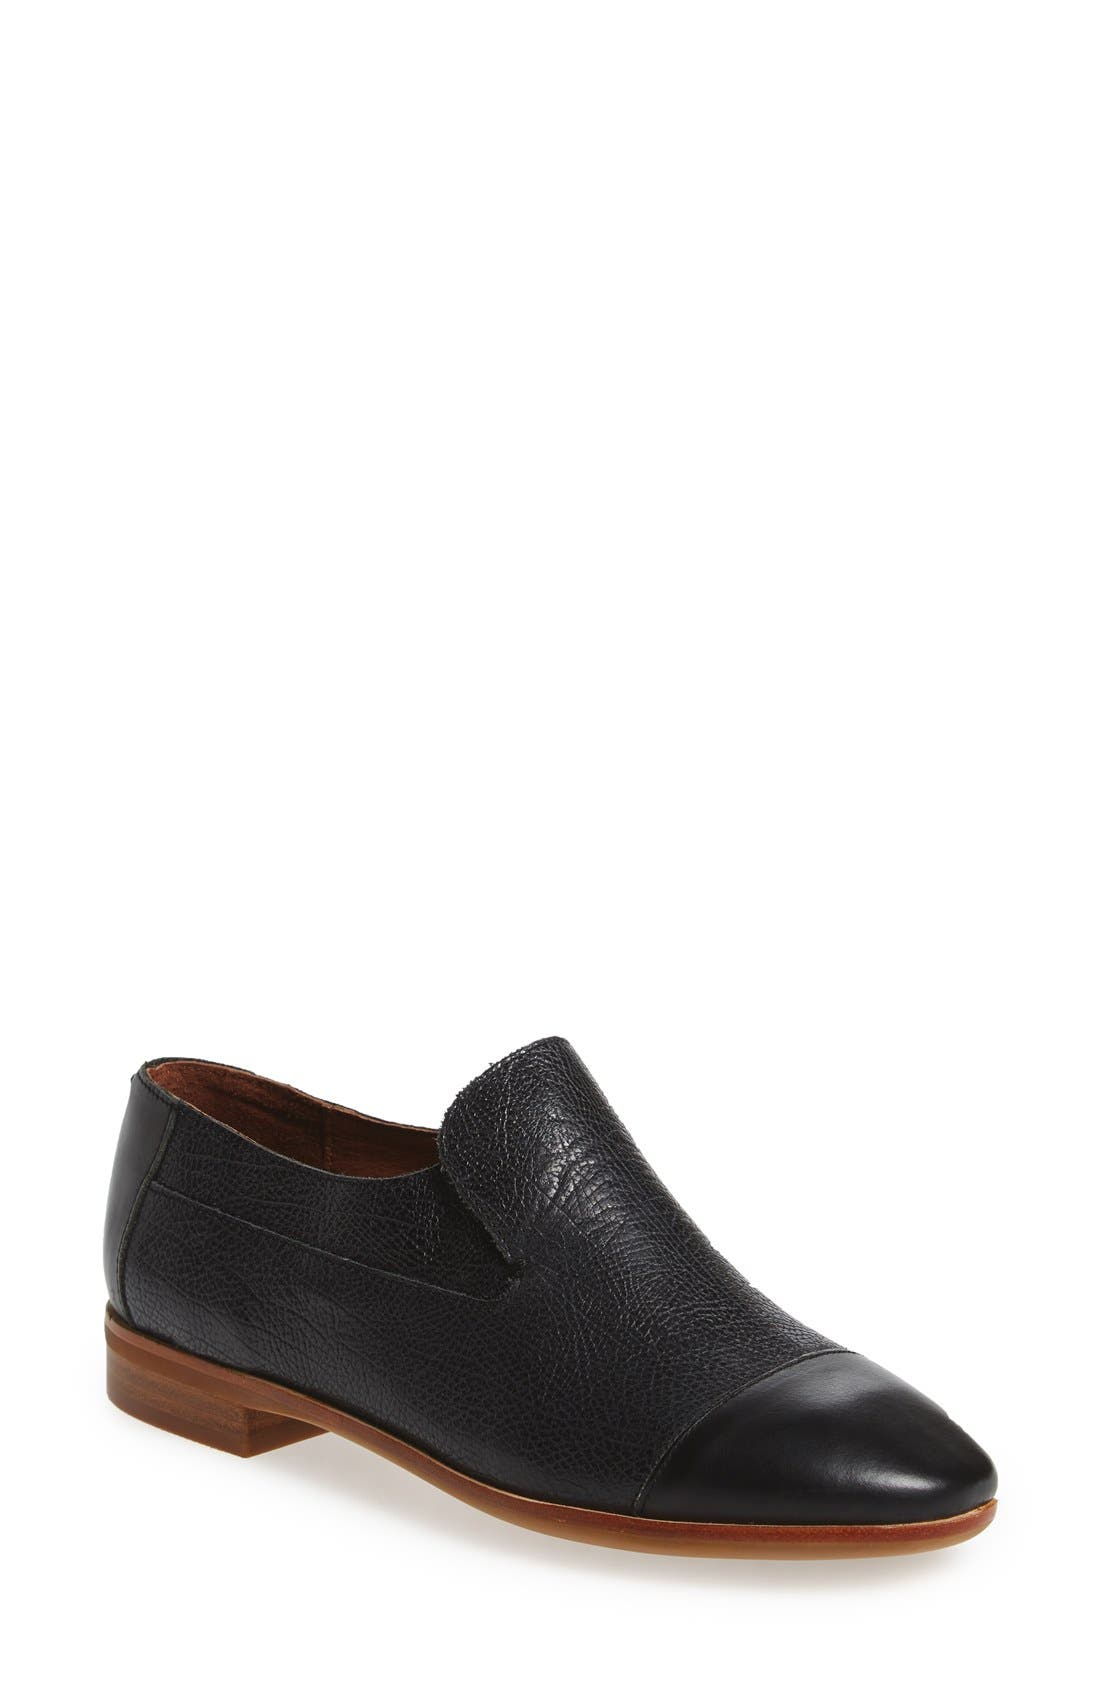 'Bryant' Cap Toe Loafer,                         Main,                         color, BLACK LEATHER